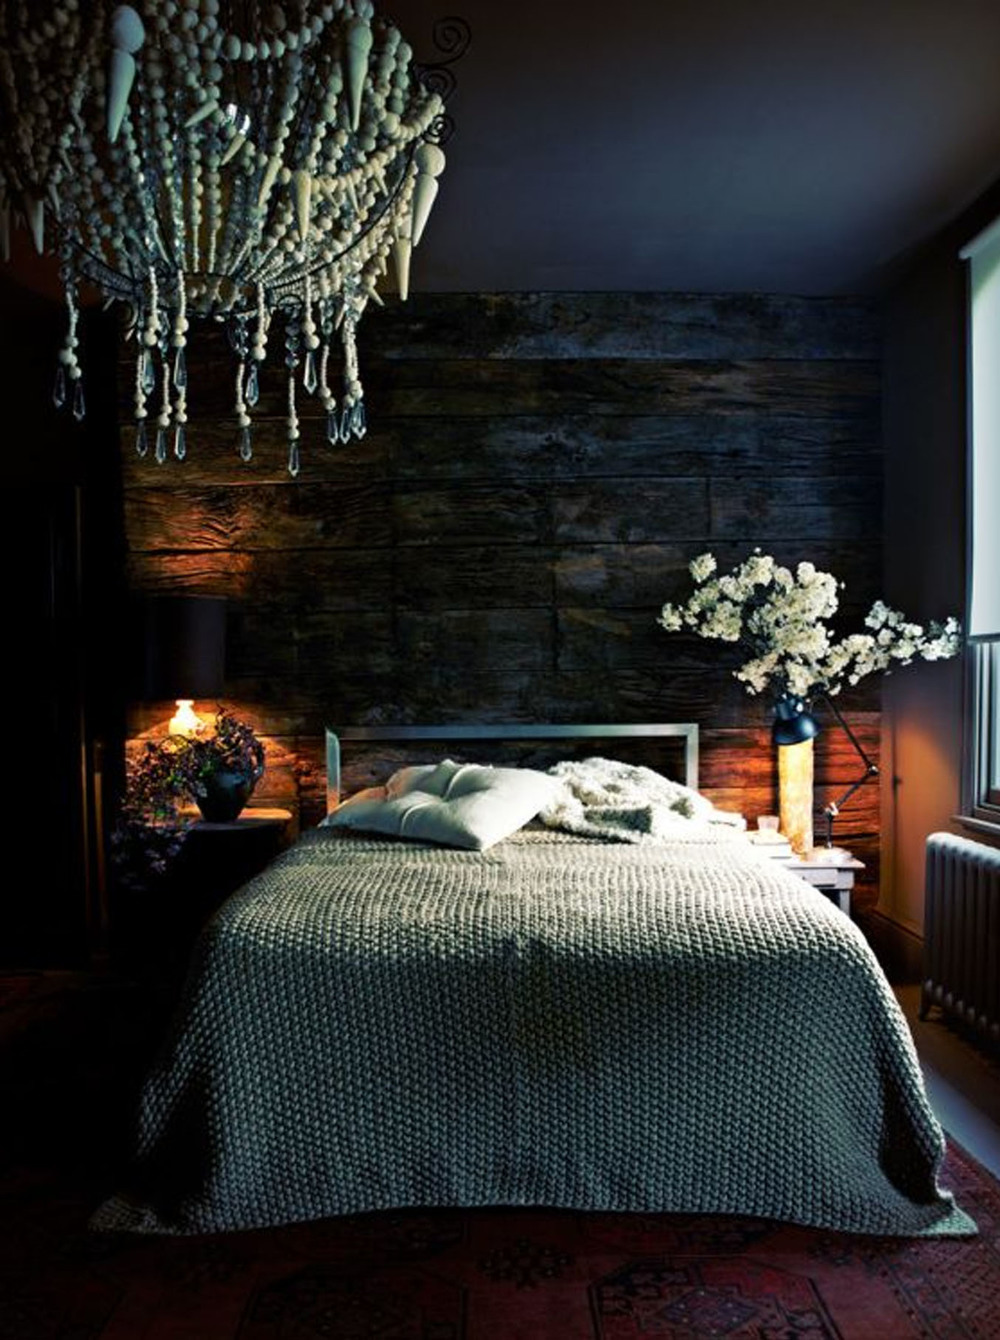 The bedroom of Abigail Ahern, the queen of dark interiors!